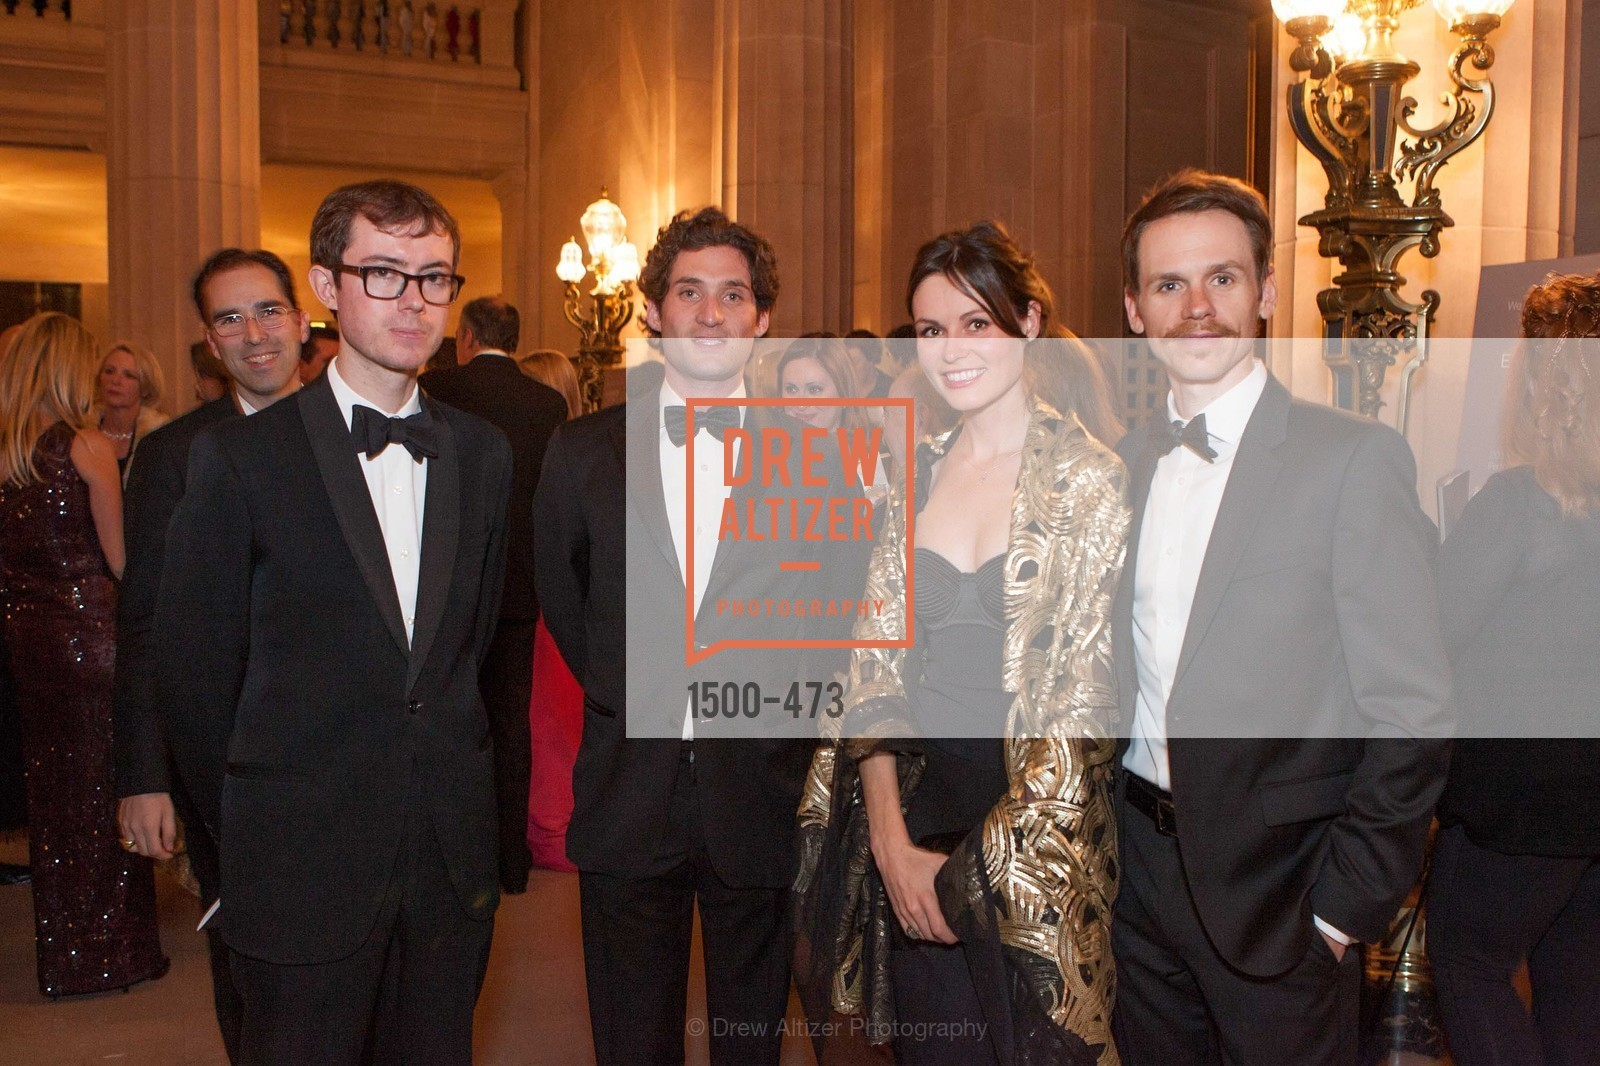 Edward King, Justin Fichelson, Katrina Barlow, Shawn Estes, ENCORE! at San Francisco BALLET'S 2014 Season Opening Night Gala, US. US, January 22nd, 2014,Drew Altizer, Drew Altizer Photography, full-service agency, private events, San Francisco photographer, photographer california